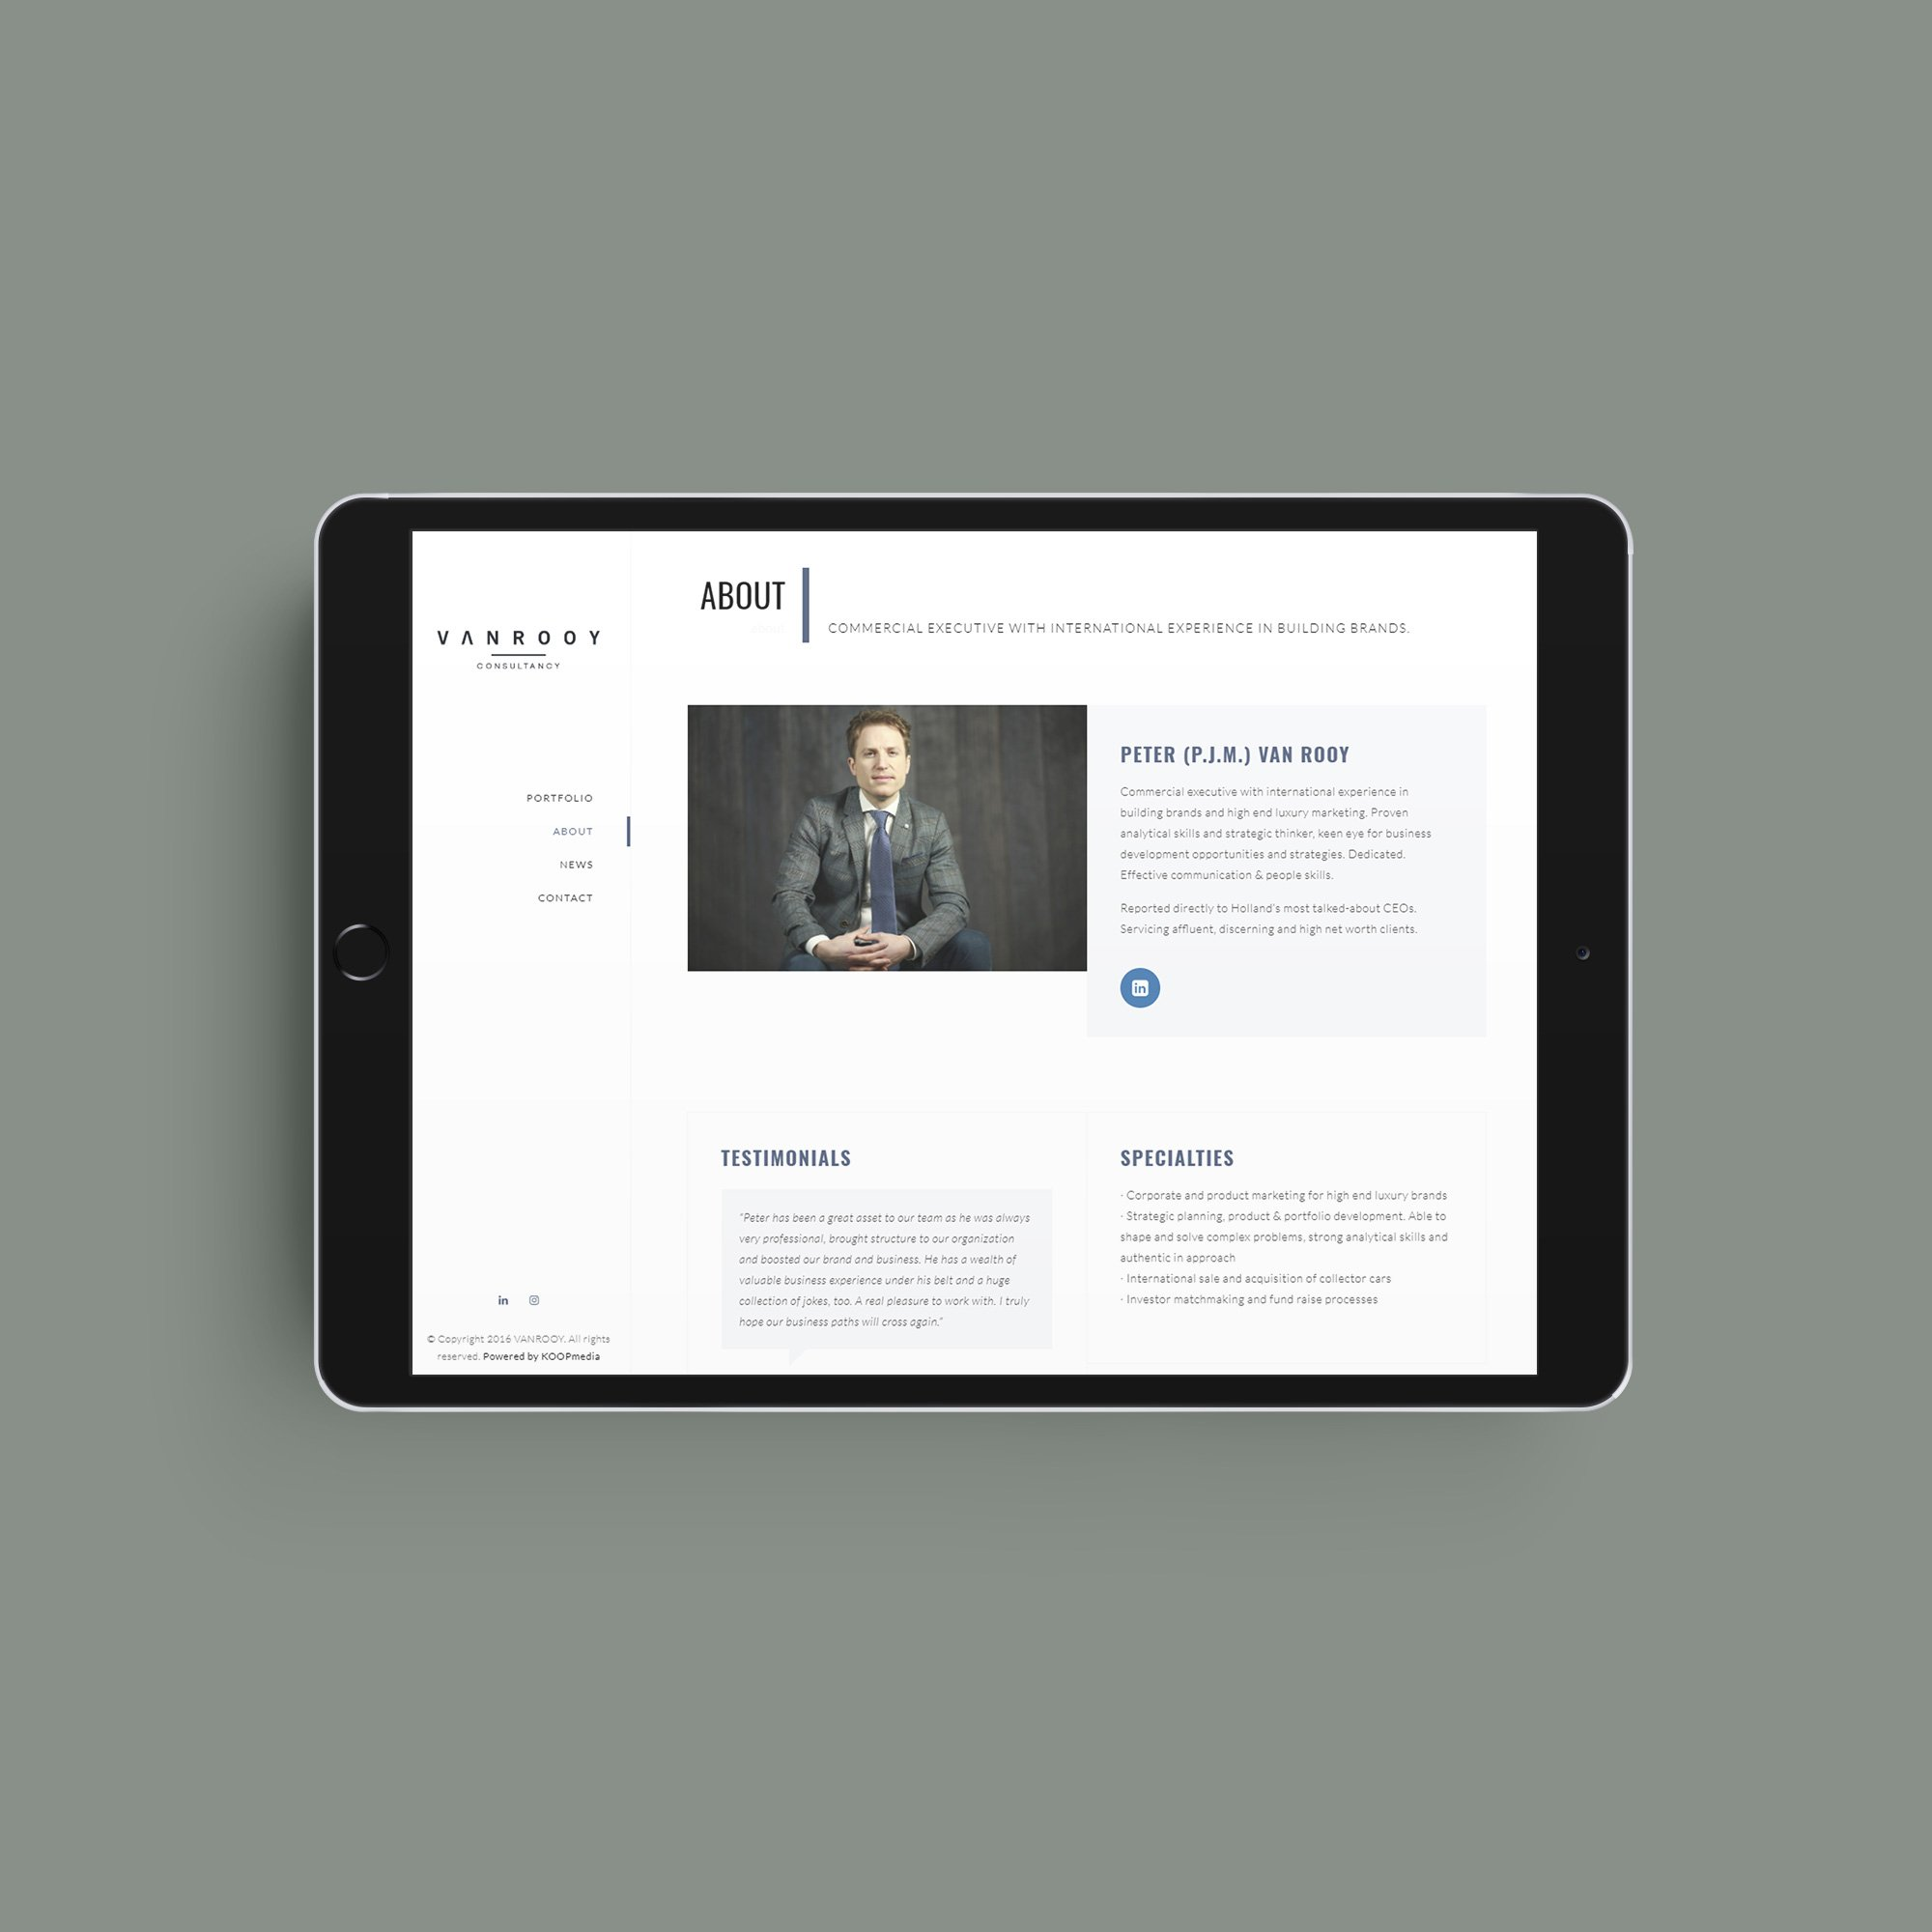 innovative-digital-amsterdam-webdesign-vanrooy_website_about_01